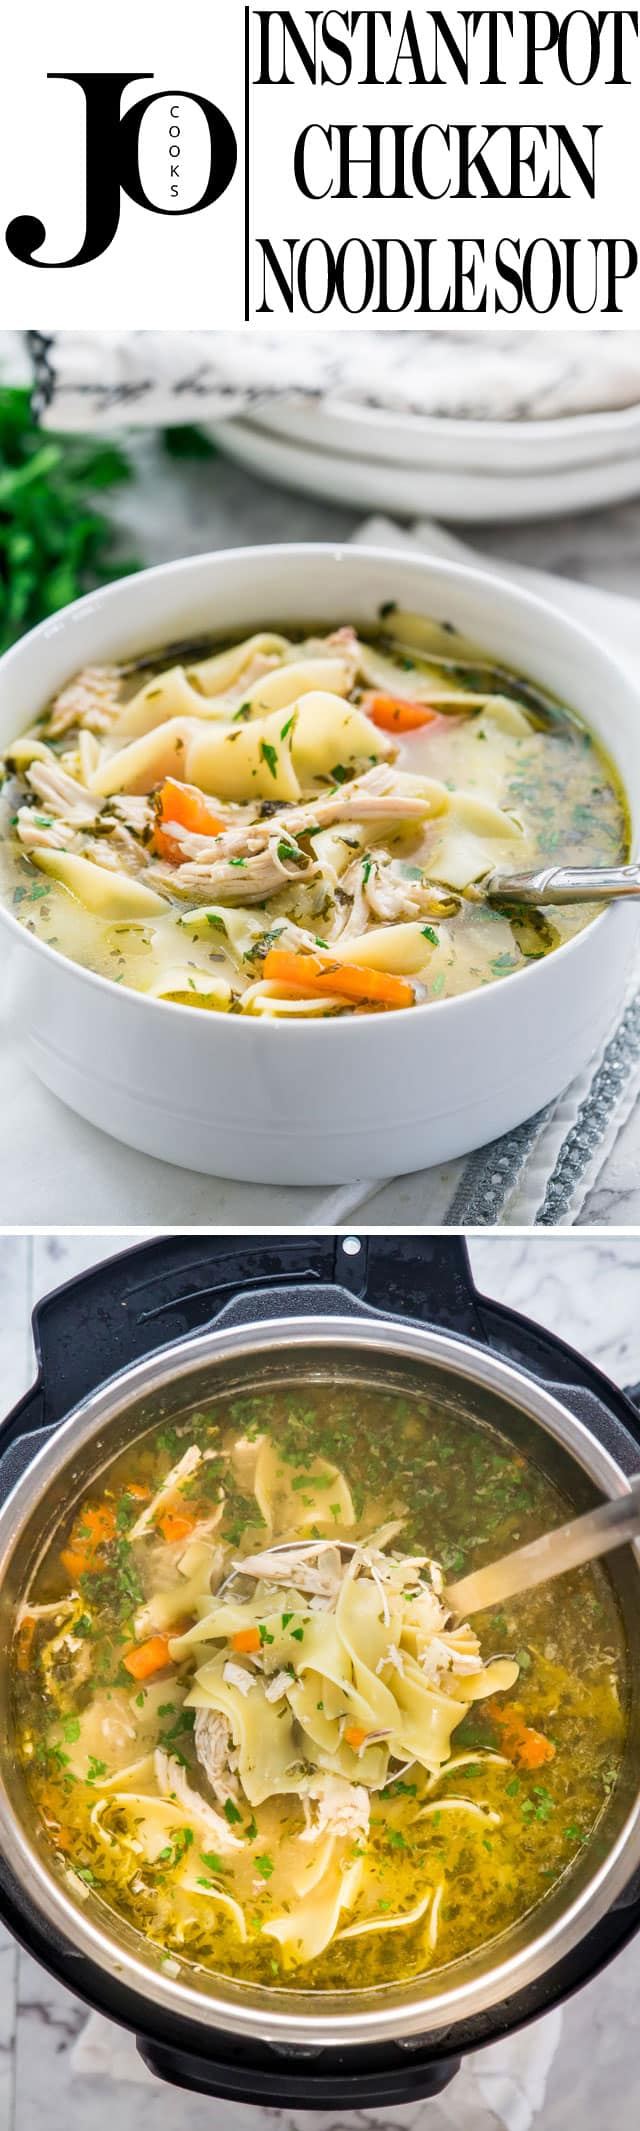 Instant Pot Chicken Noodle Soup made from scratch and in a fraction of the time. Delicious and hearty, loaded with noodles and chicken, this soup will warm the cockles of your heart. www.jocooks.com #instantpotsoup